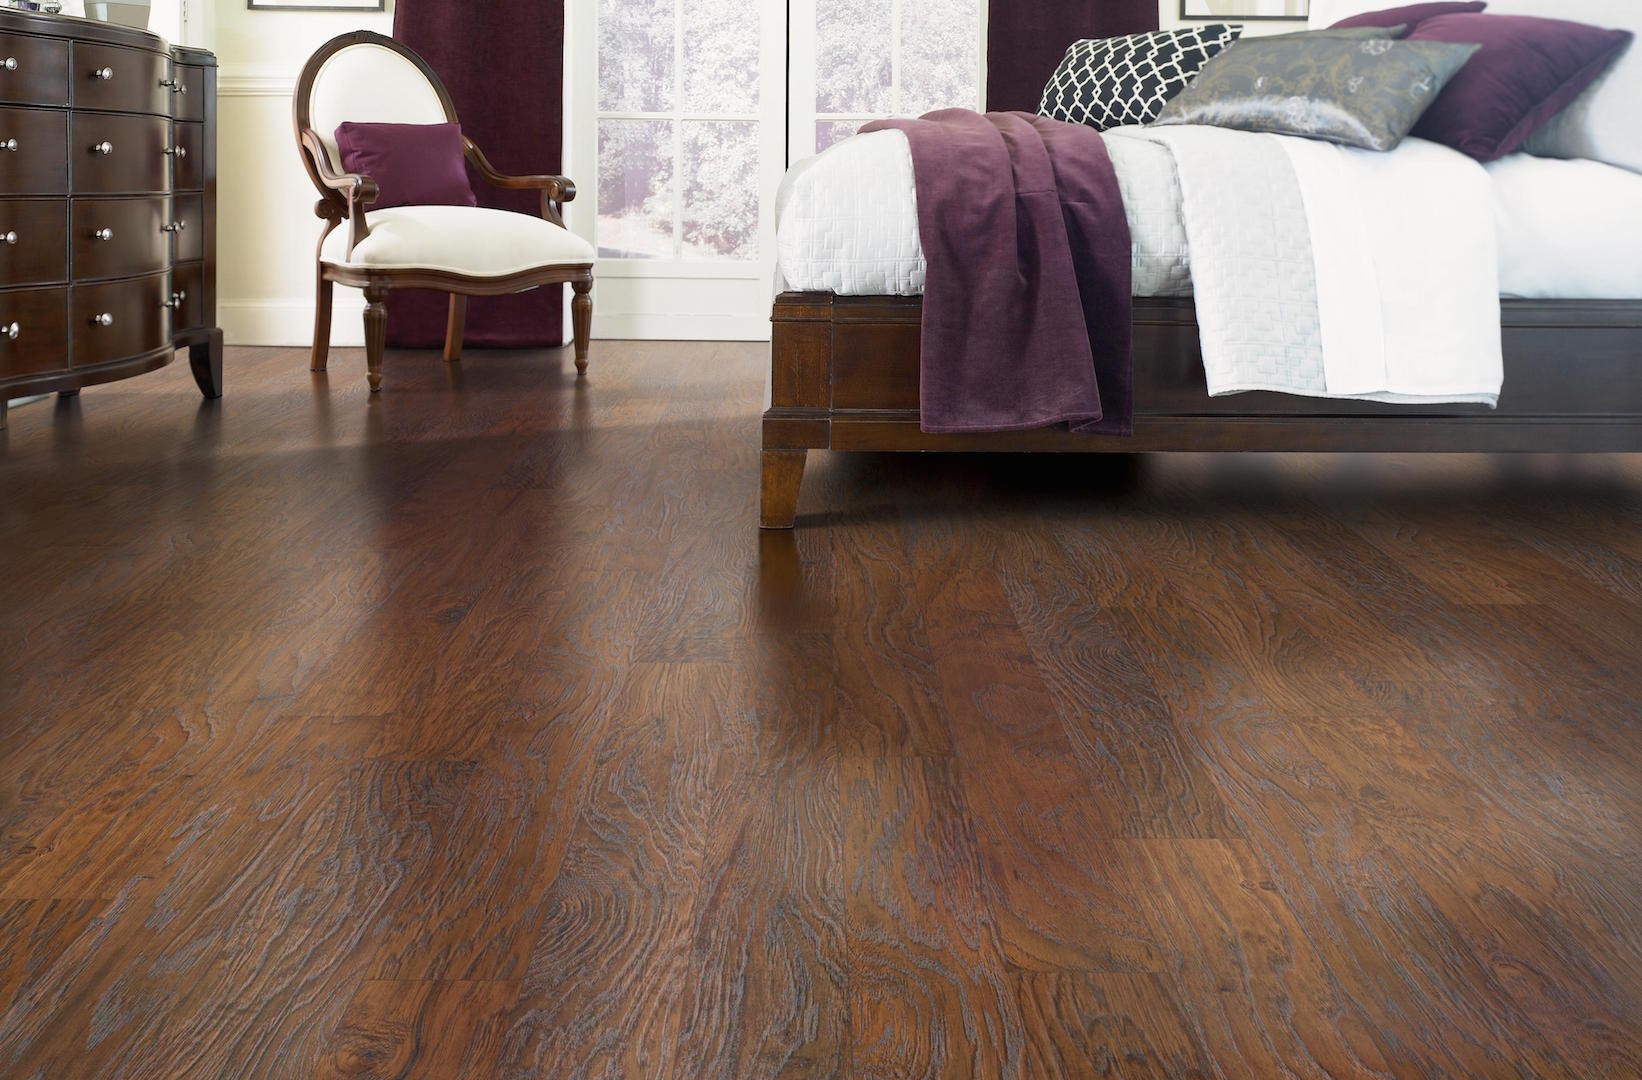 Buyers guide series vinyl flooring tampa flooring company for Flooring companies